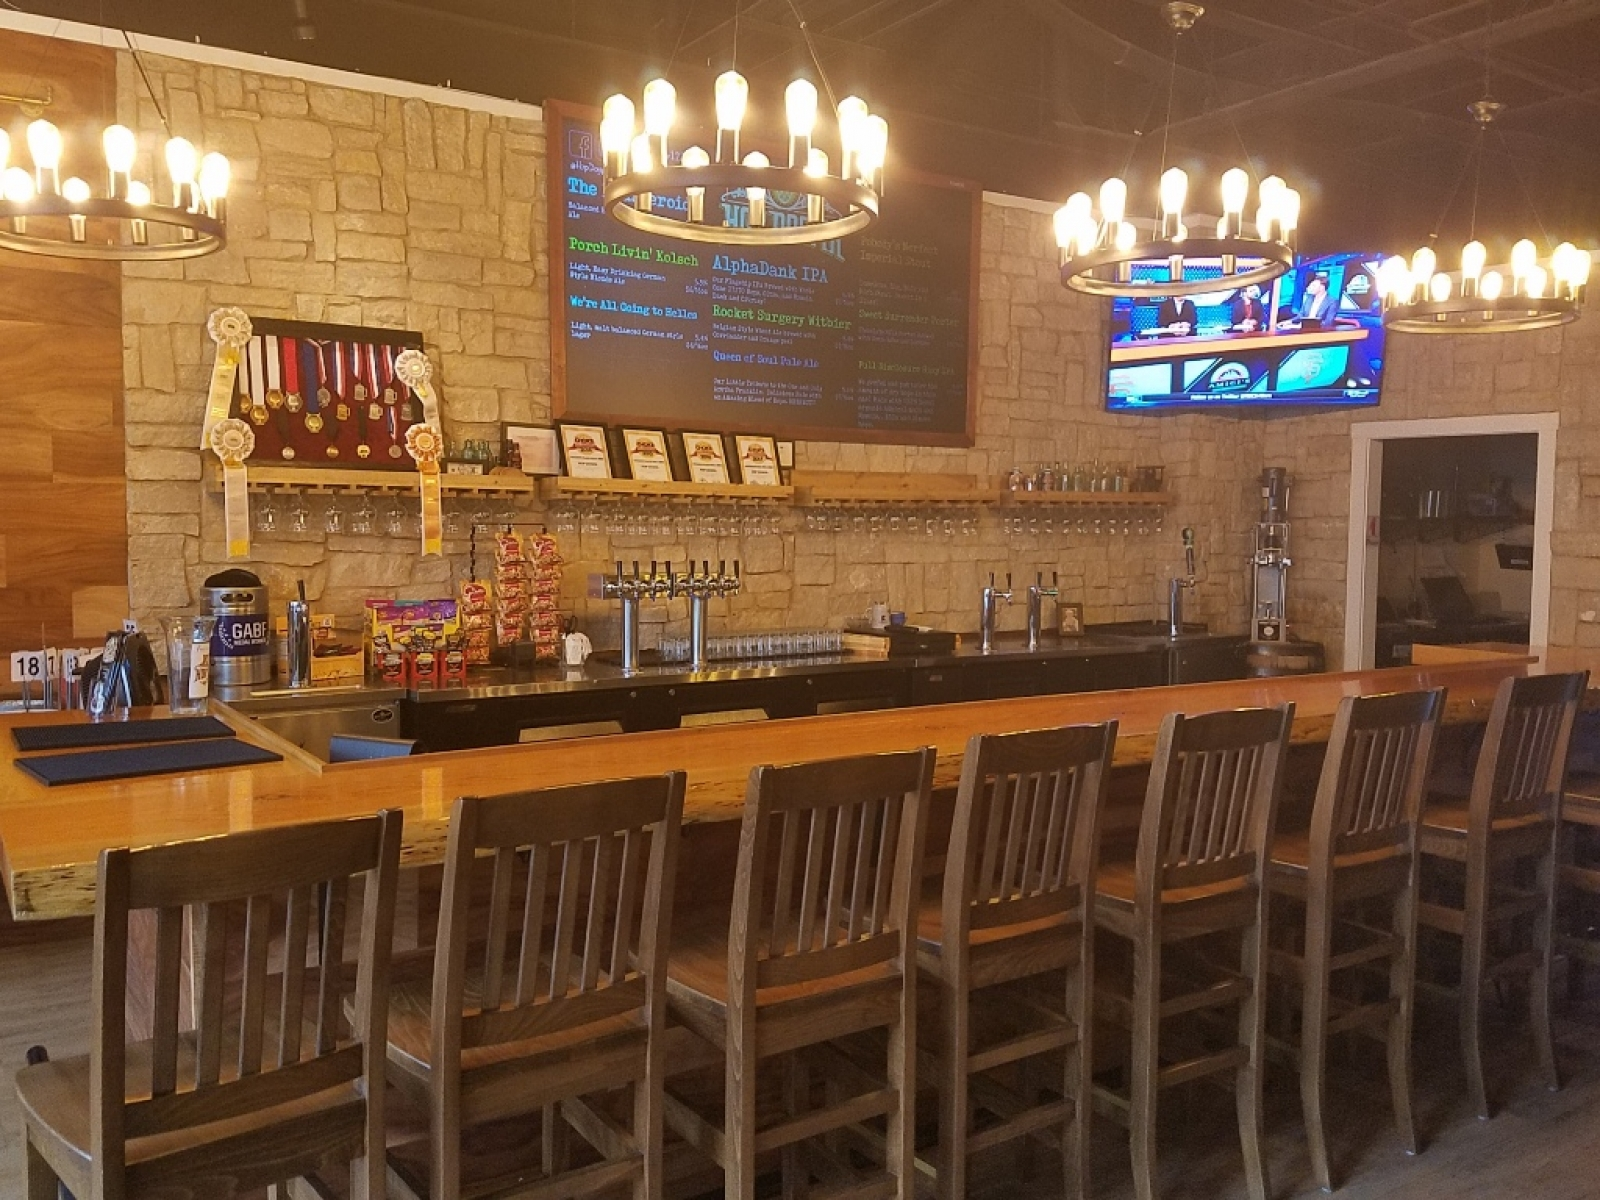 Taps and bar area